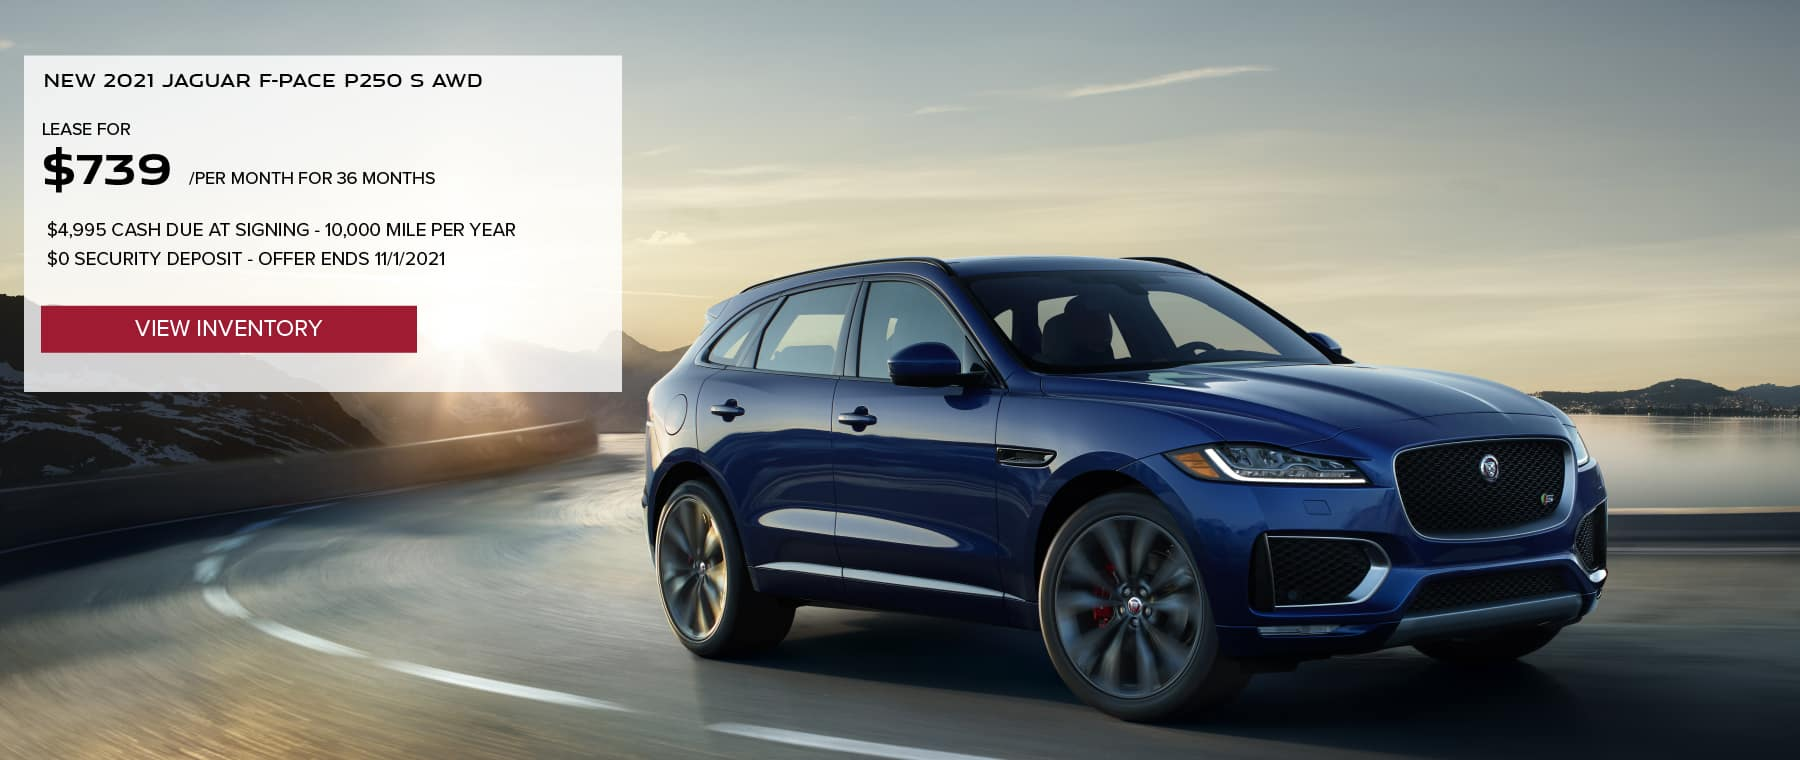 NEW 2021 JAGUAR F-PACE P250 S AWD. $739 PER MONTH. 36 MONTH LEASE TERM. $4,995 CASH DUE AT SIGNING. $0 SECURITY DEPOSIT. 10,000 MILES PER YEAR. EXCLUDES RETAILER FEES, TAXES, TITLE AND REGISTRATION FEES, PROCESSING FEE AND ANY EMISSION TESTING CHARGE. OFFER ENDS 11/1/2021. VIEW INVENTORY. BLUE JAGUAR F-PACE DRIVING THROUGH DESERT.